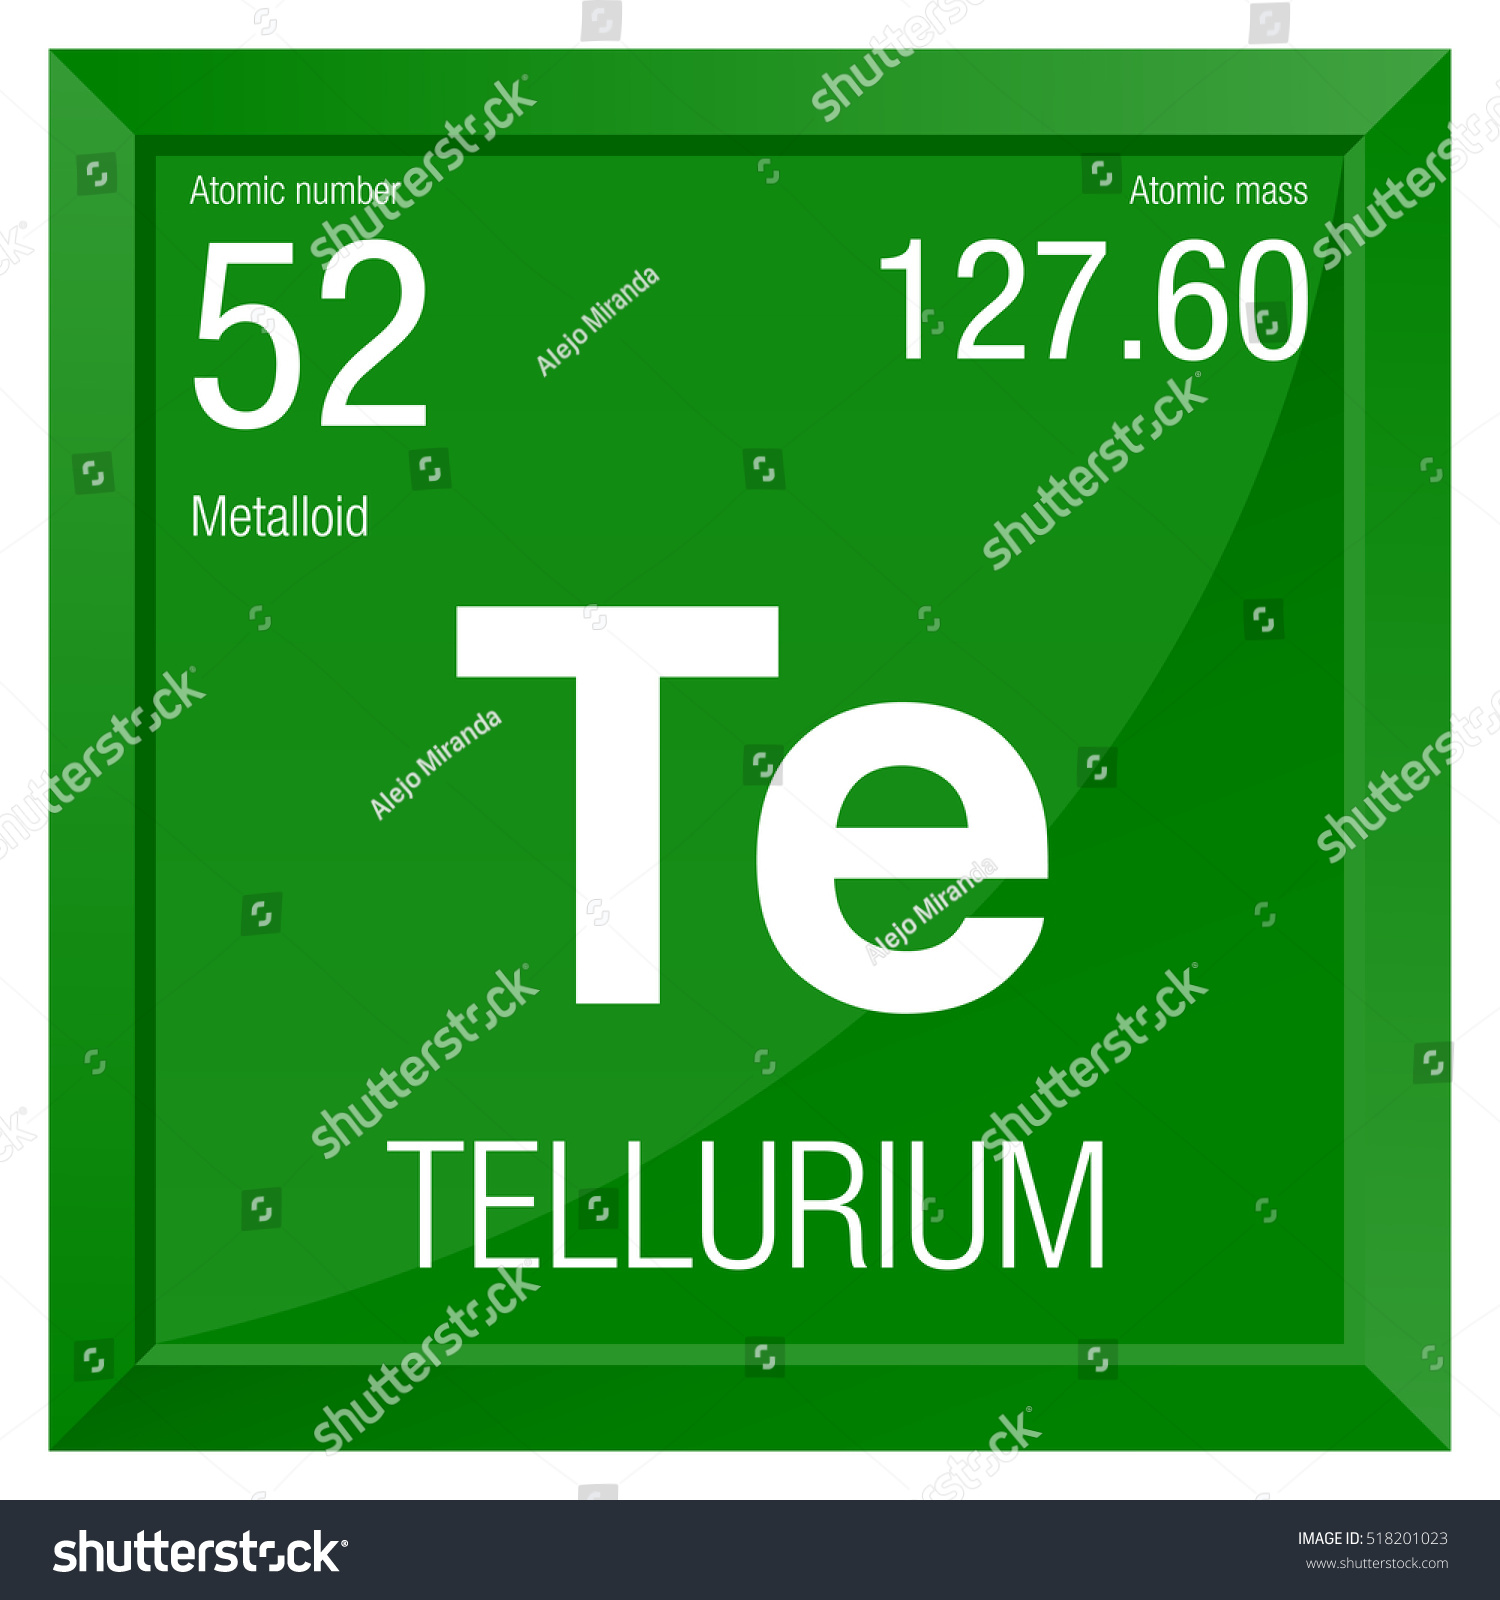 Tellurium symbol element number 52 periodic stock vector 518201023 tellurium symbol element number 52 of the periodic table of the elements chemistry biocorpaavc Images